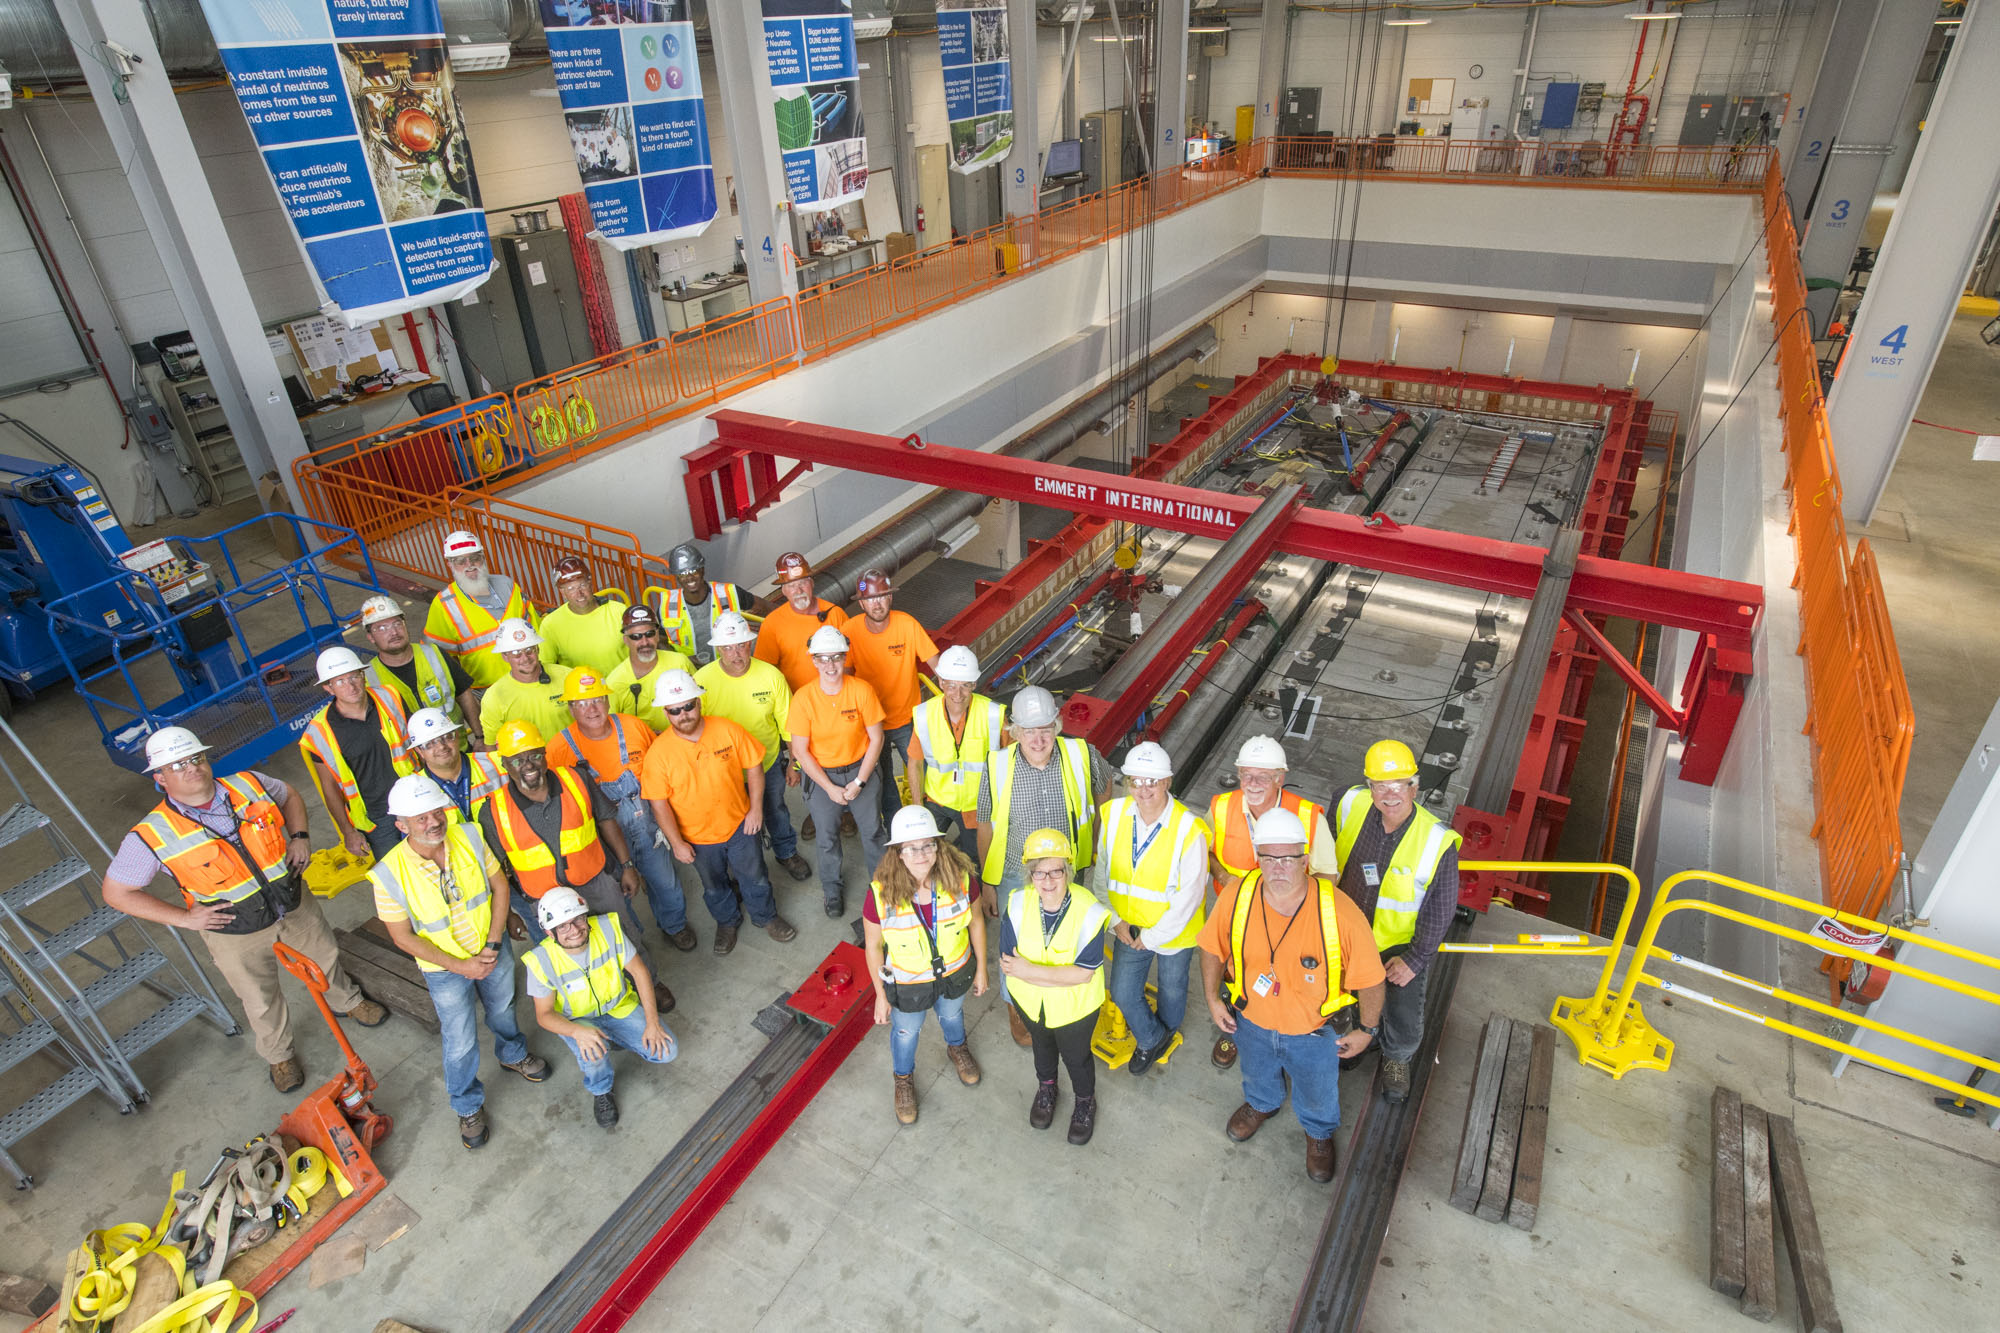 ICARUS neutrino detector installed at Fermilab | symmetry magazine